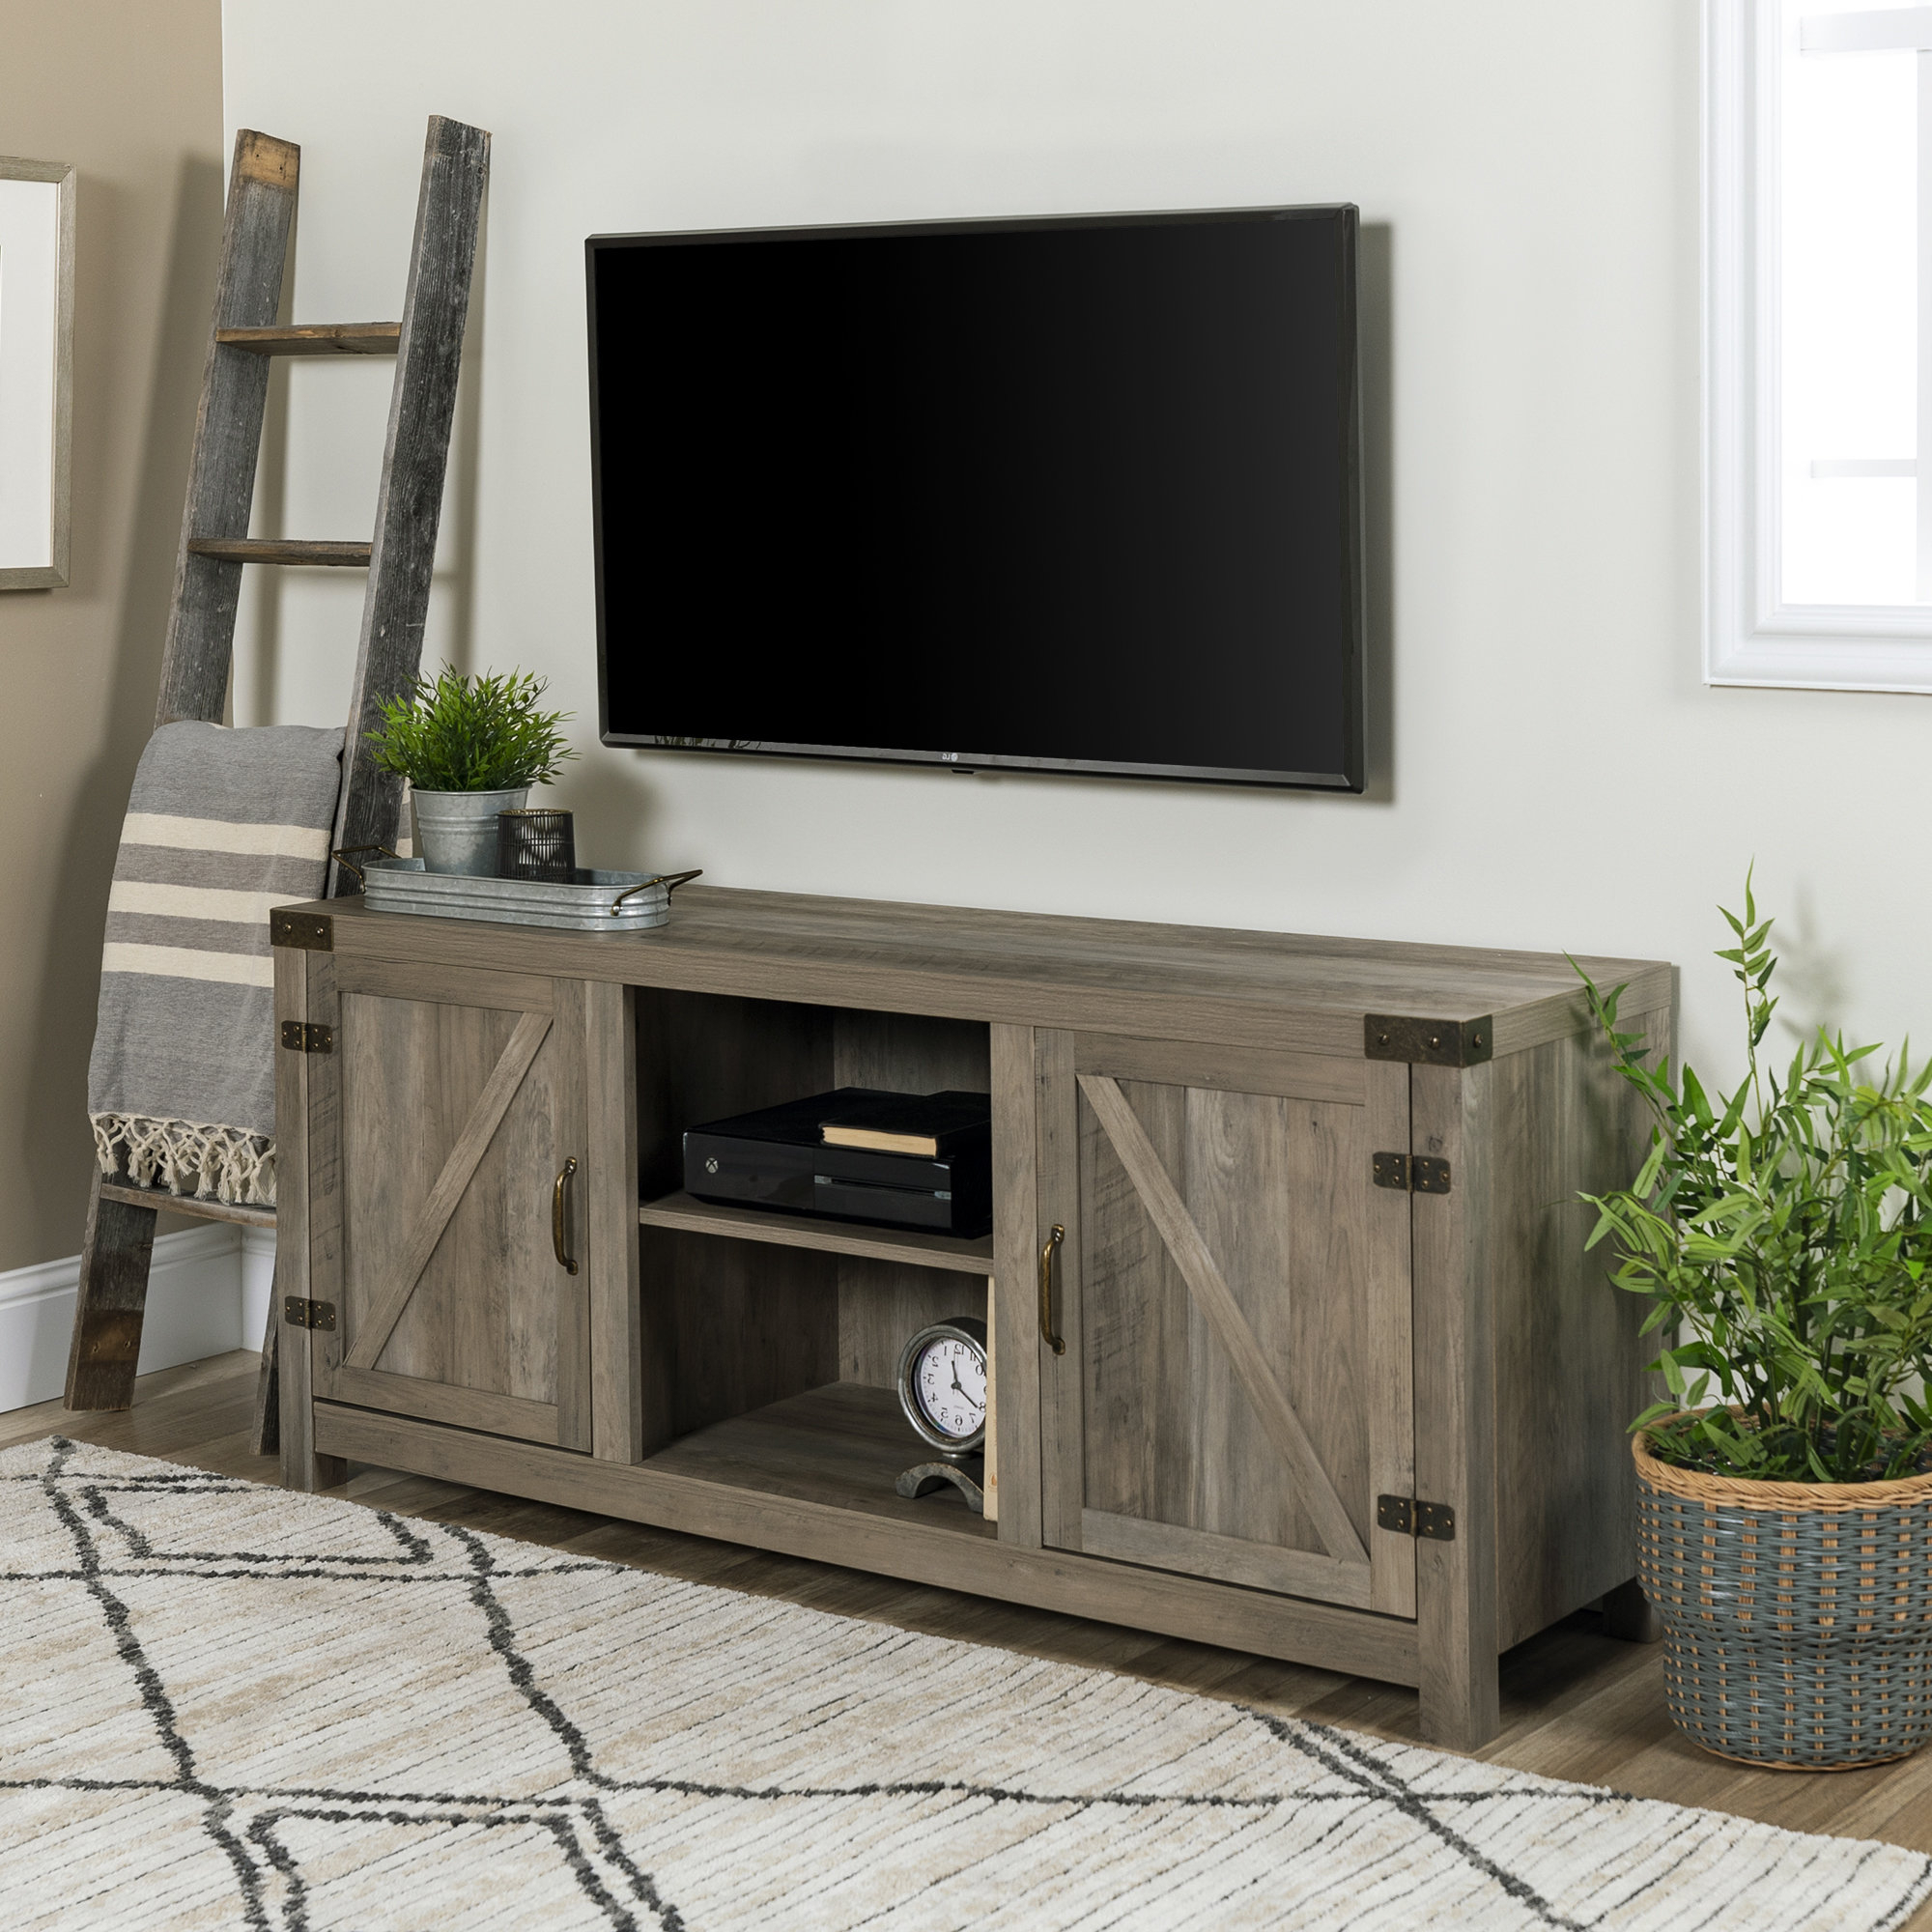 72 Inch Tv Stand | Wayfair Pertaining To Kenzie 60 Inch Open Display Tv Stands (View 8 of 20)